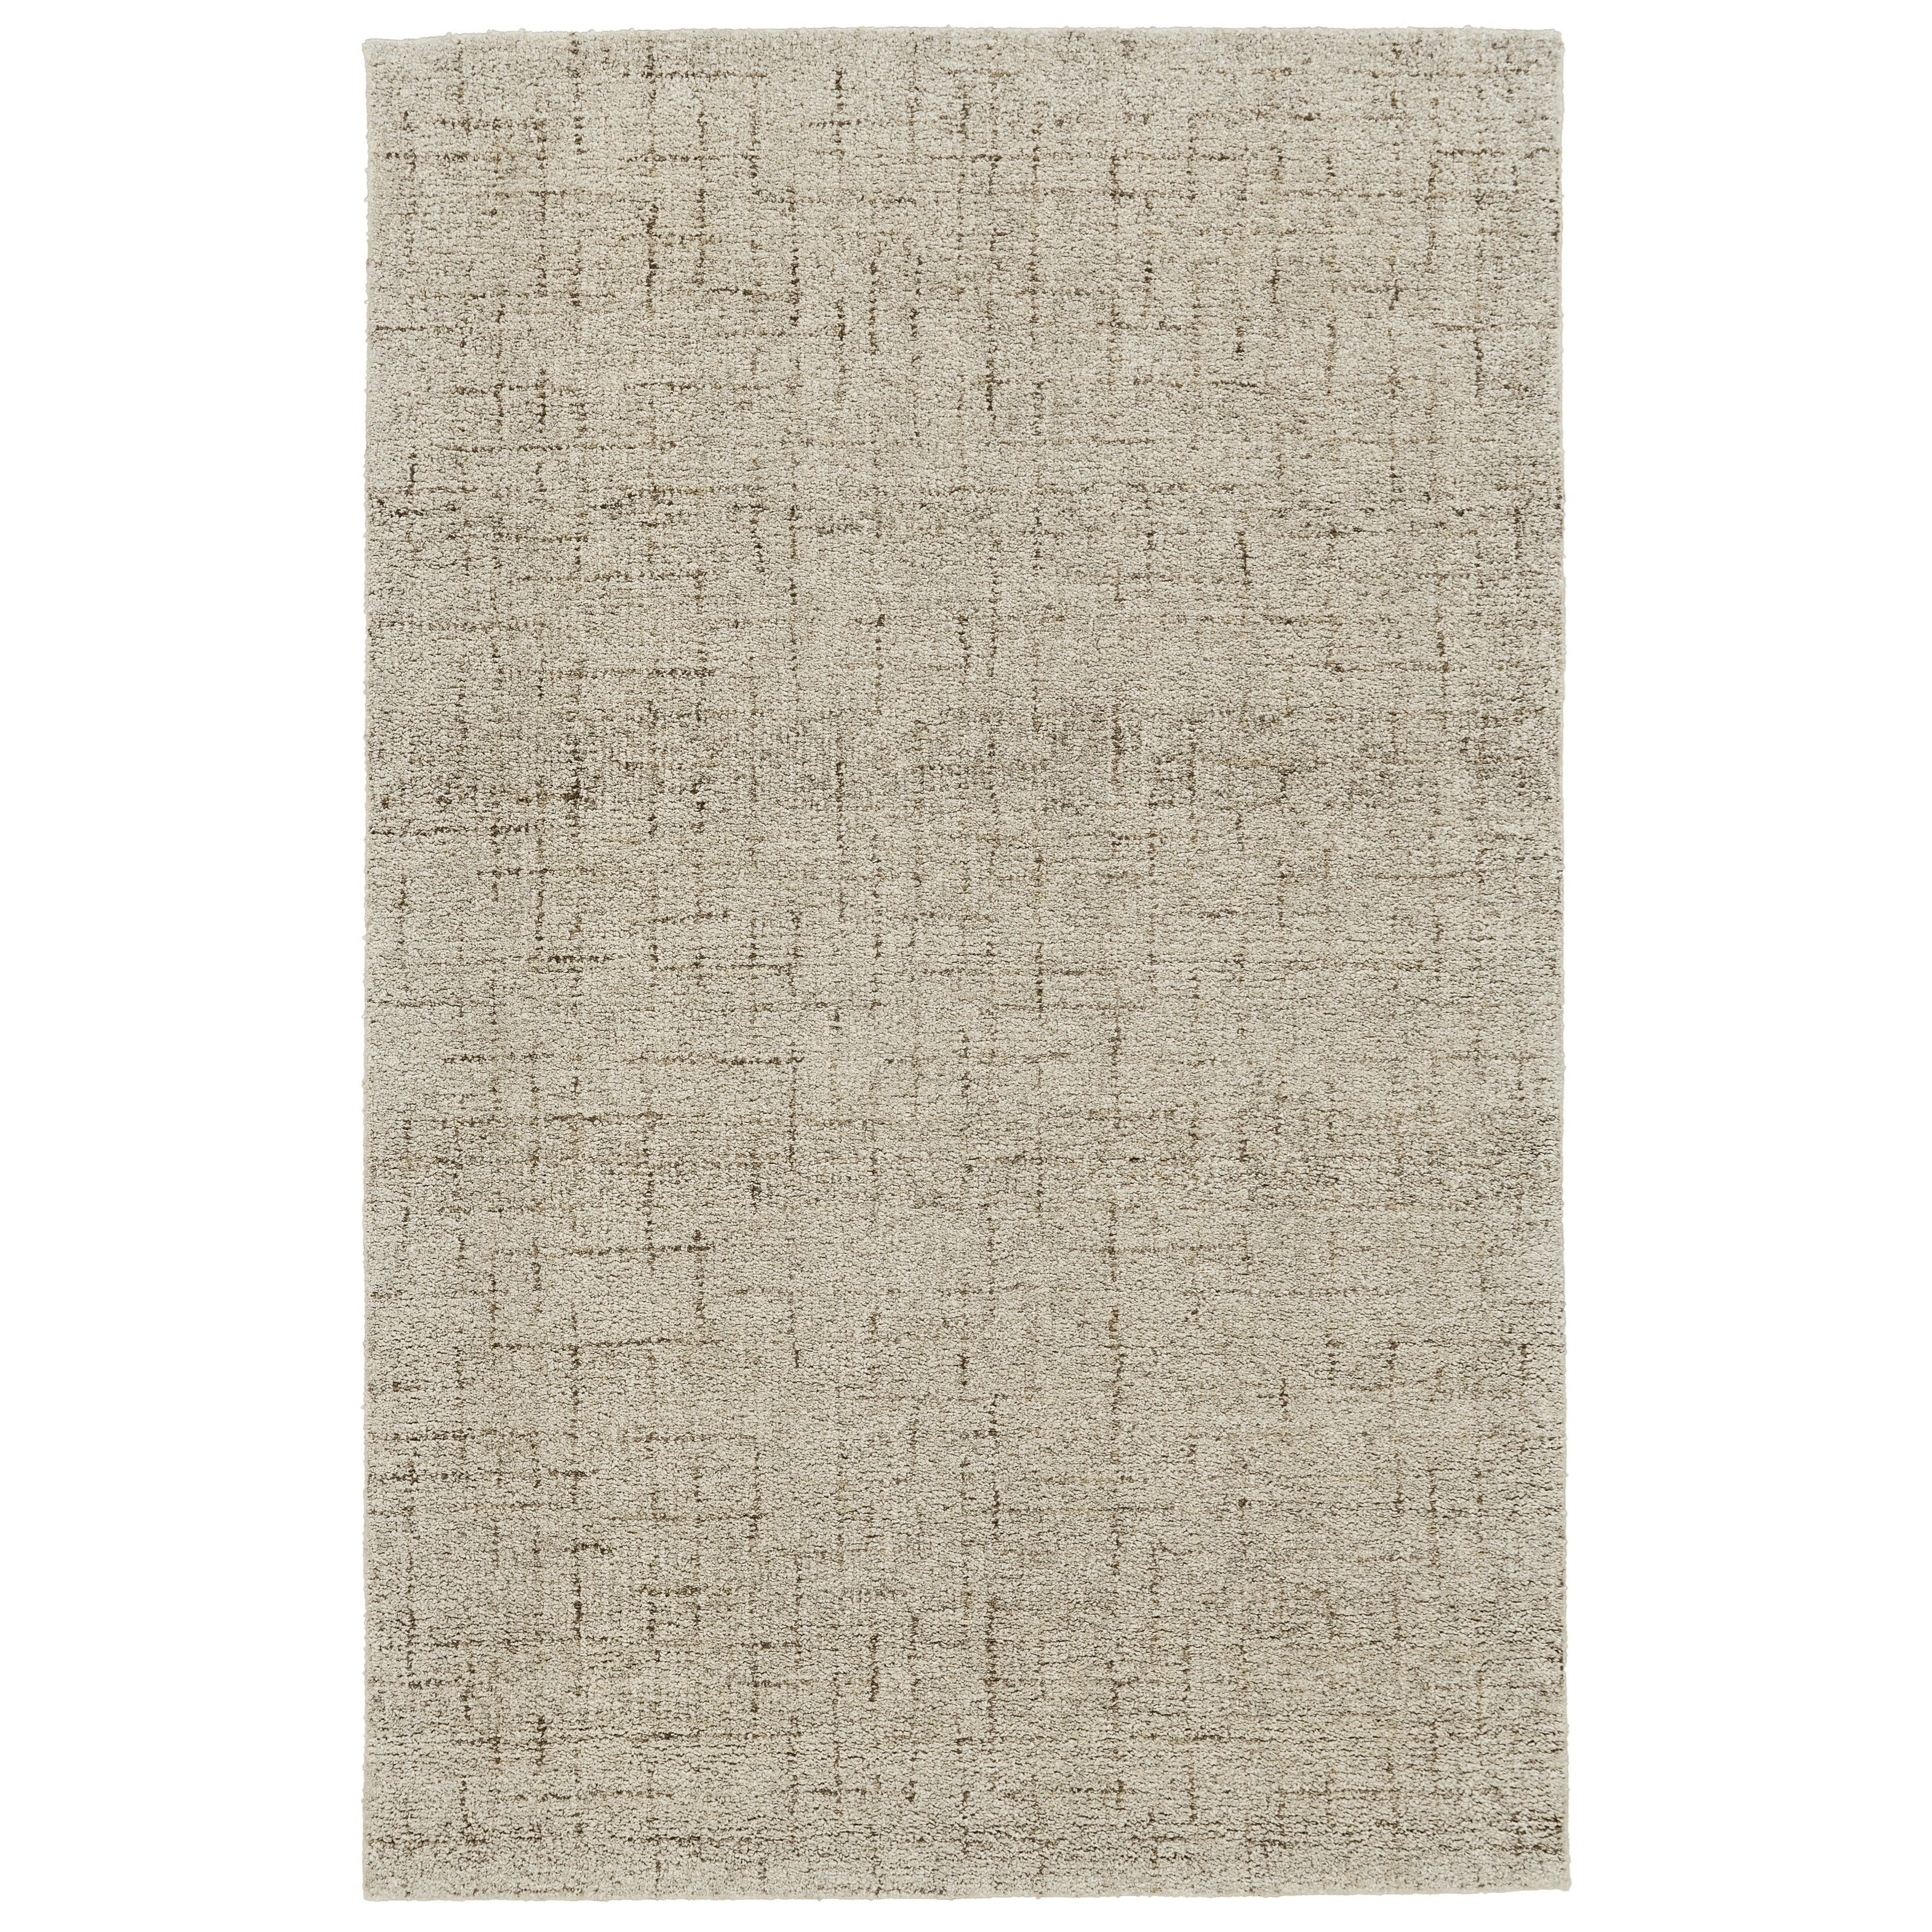 Morisco Oatmeal 8' X 11' Area Rug by Feizy Rugs at Sprintz Furniture